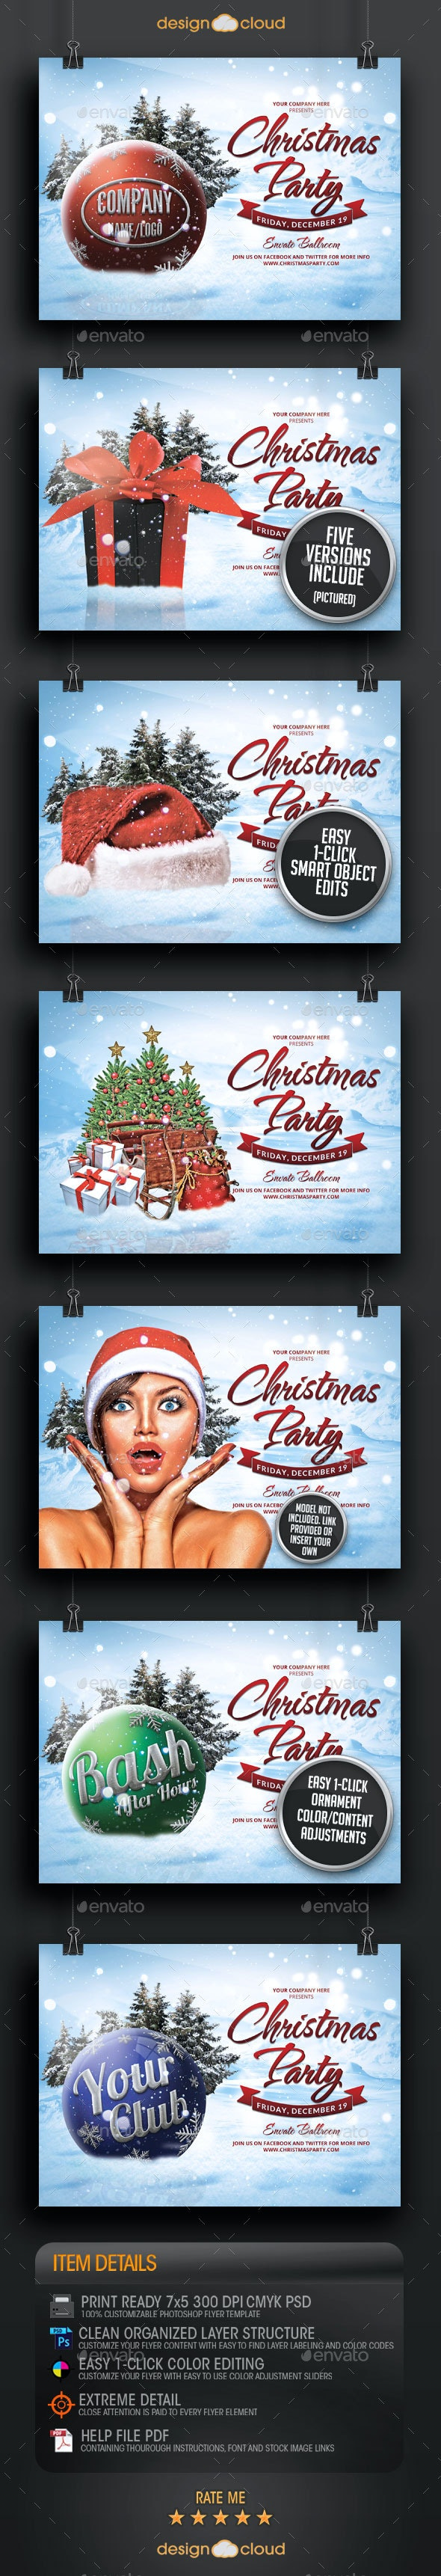 Christmas Party and Event All Purpose Flyer - Holidays Events